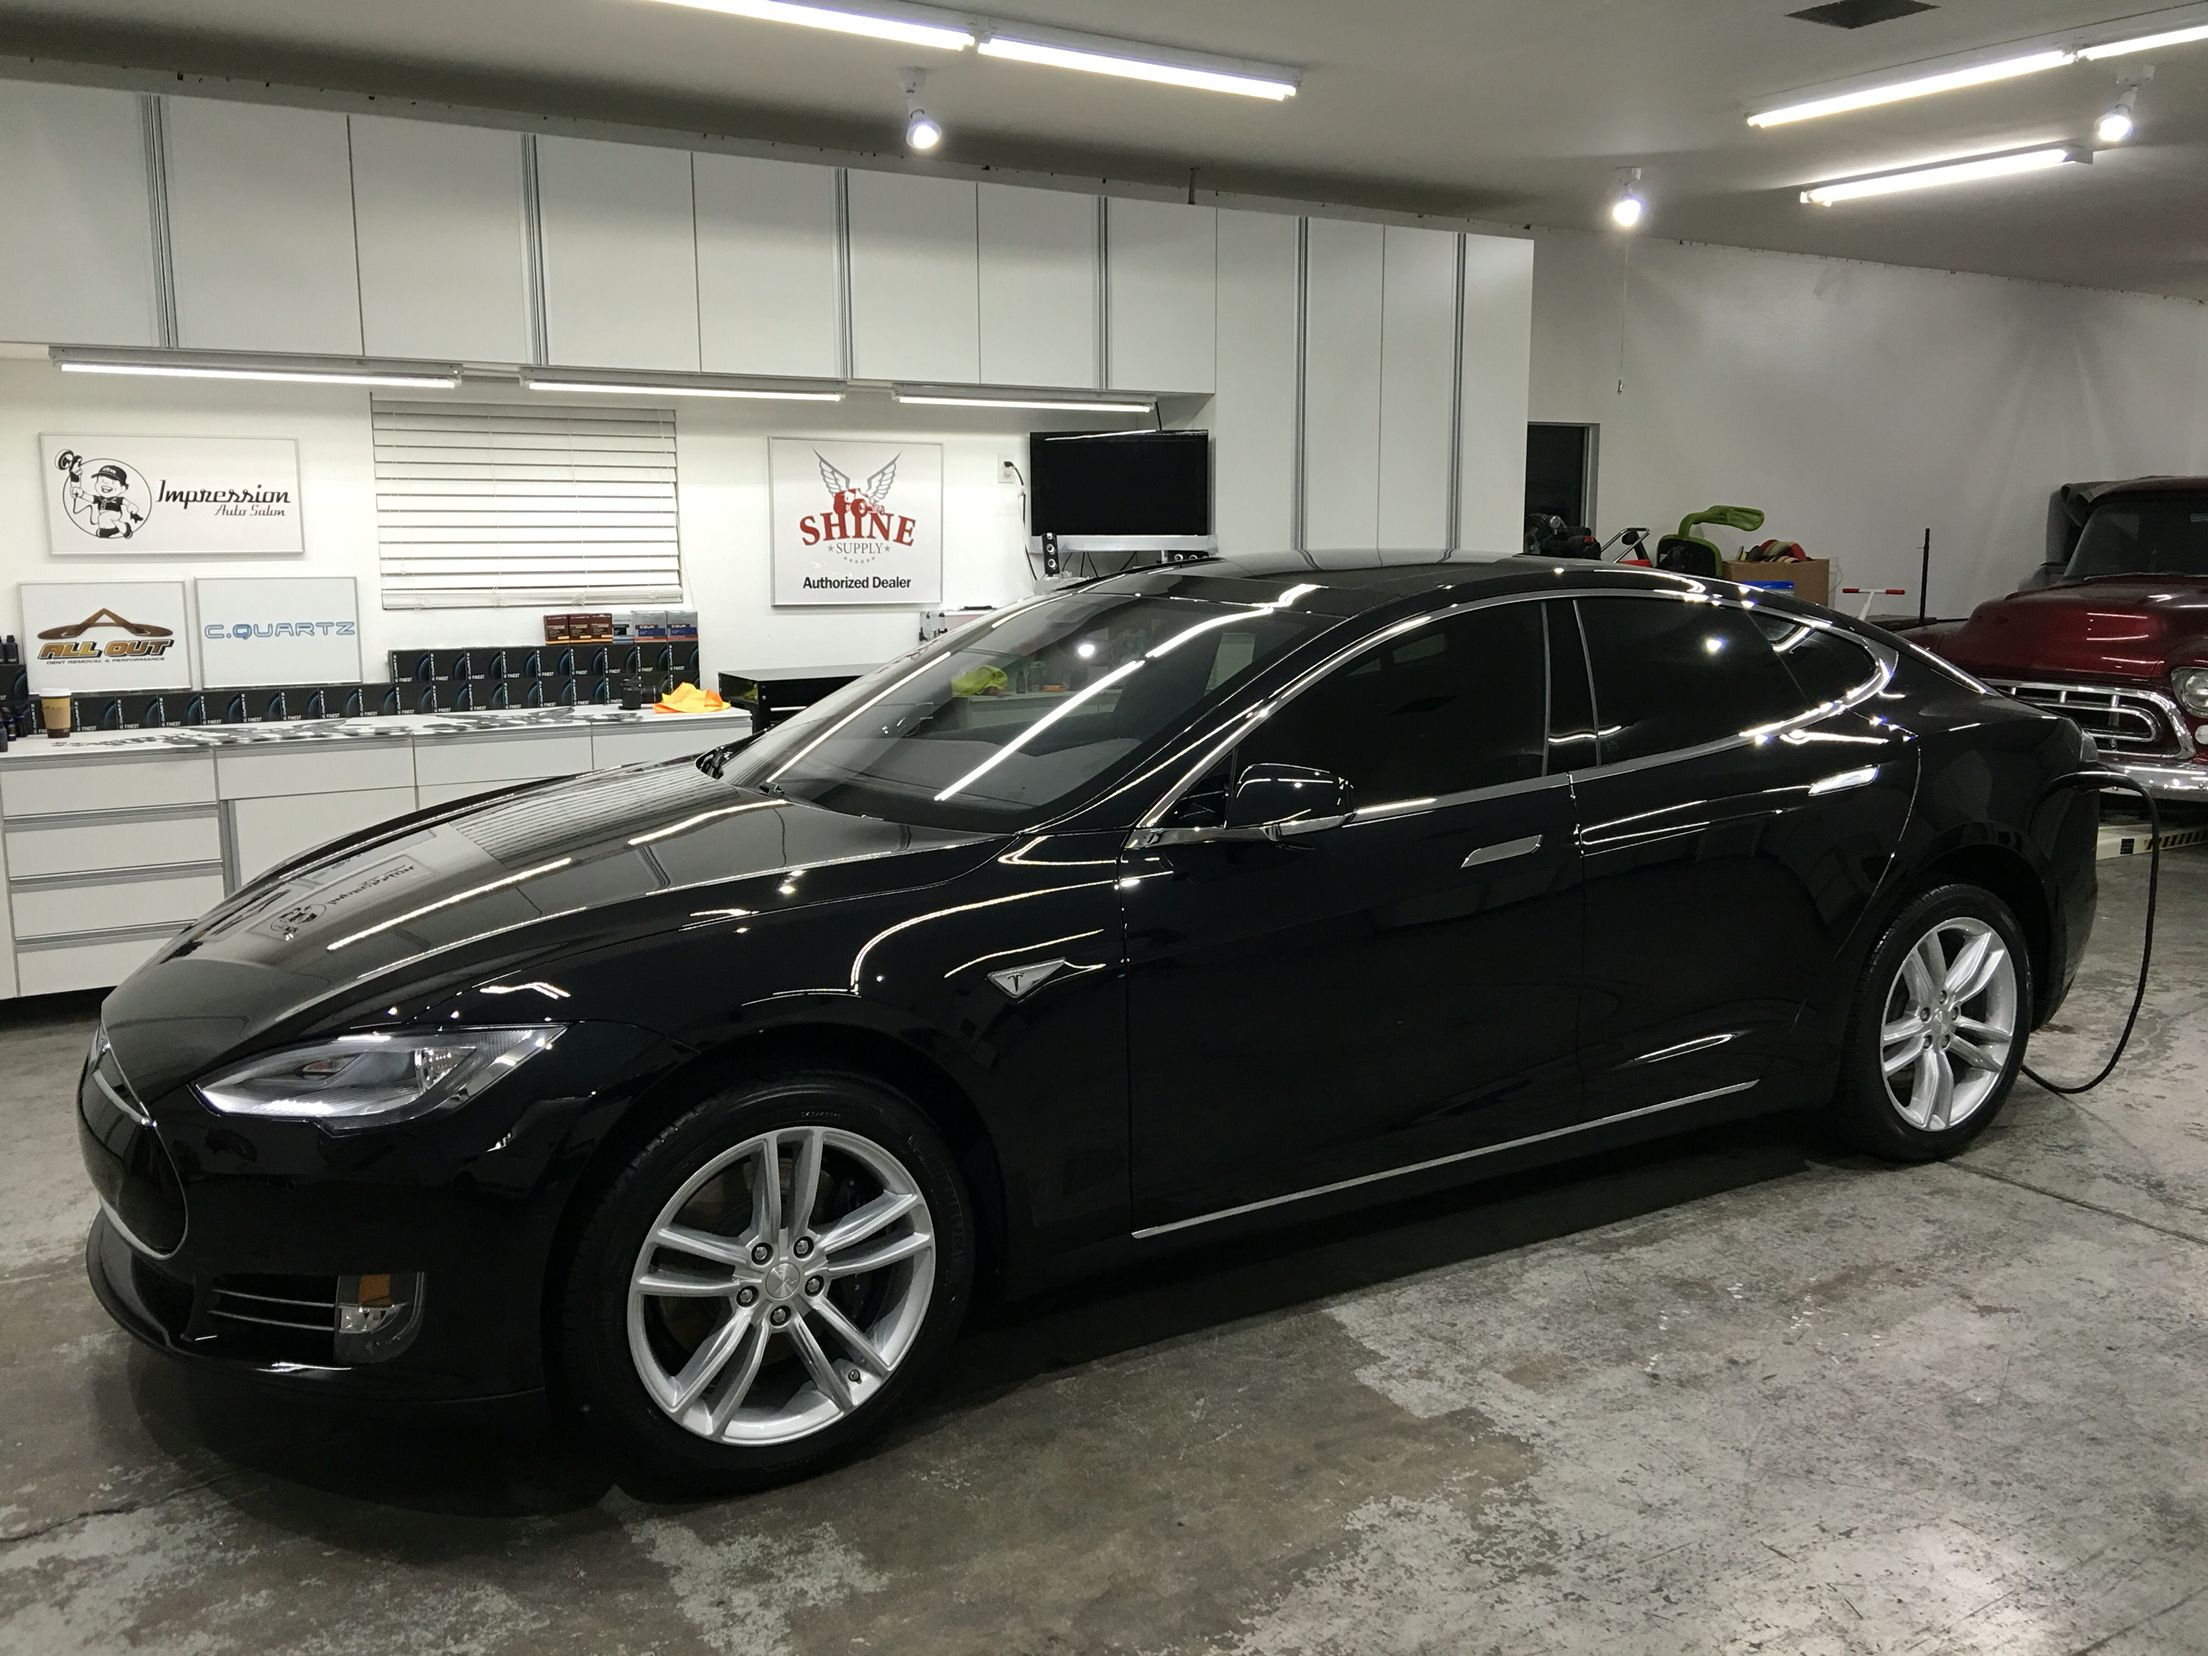 c80da888f7 After a complete paint enhancement polish. Then CQuartz ceramic coating  applied to the protecting film. Giving this Tesla Model S 90d the ...